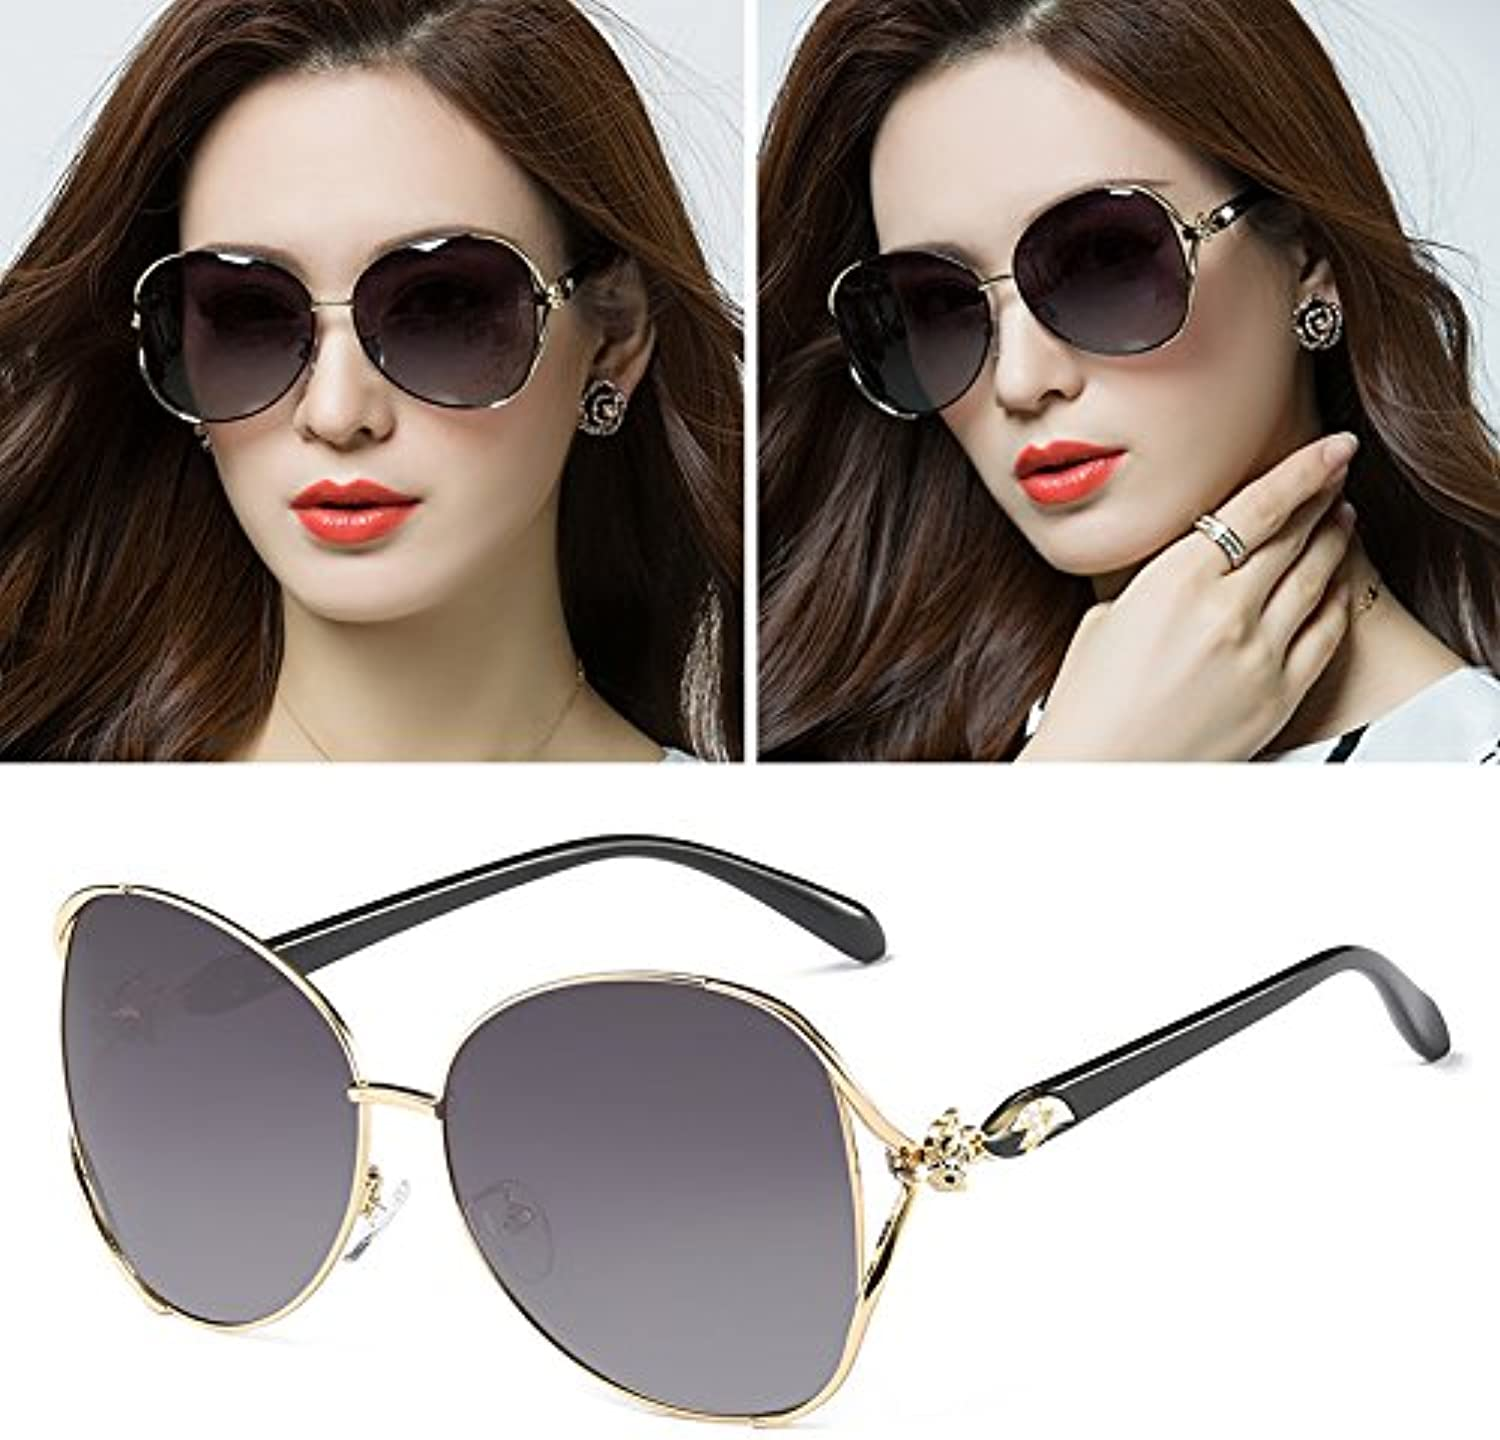 Sunyan The new high gloss sunglasses round face sunglasses female tide stars, glasses box with square face a red long face